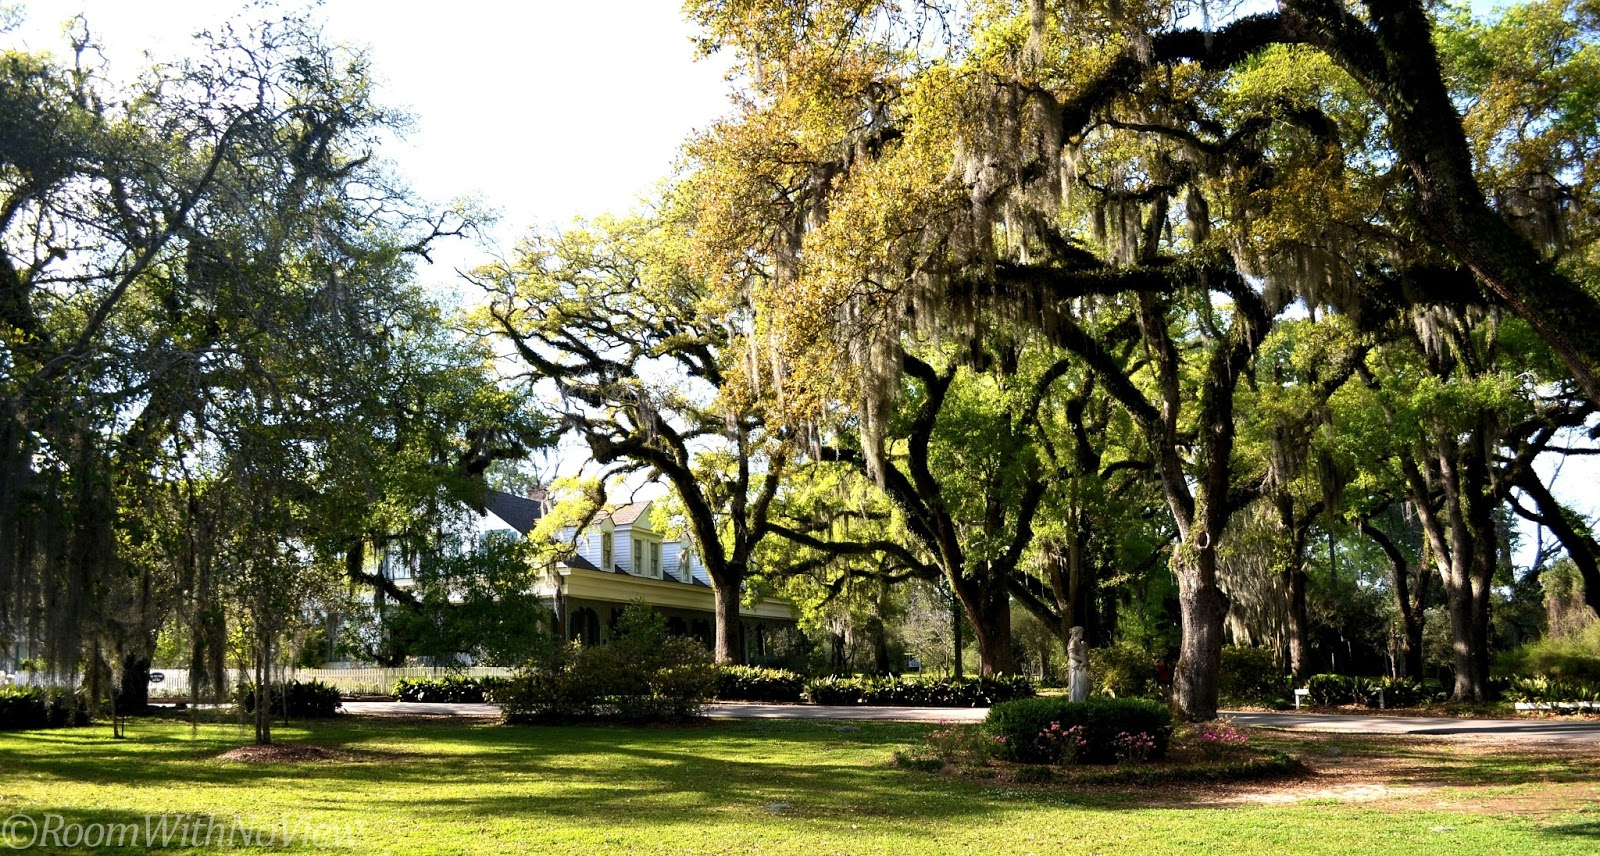 Room With No View: A View of The Myrtles Plantation